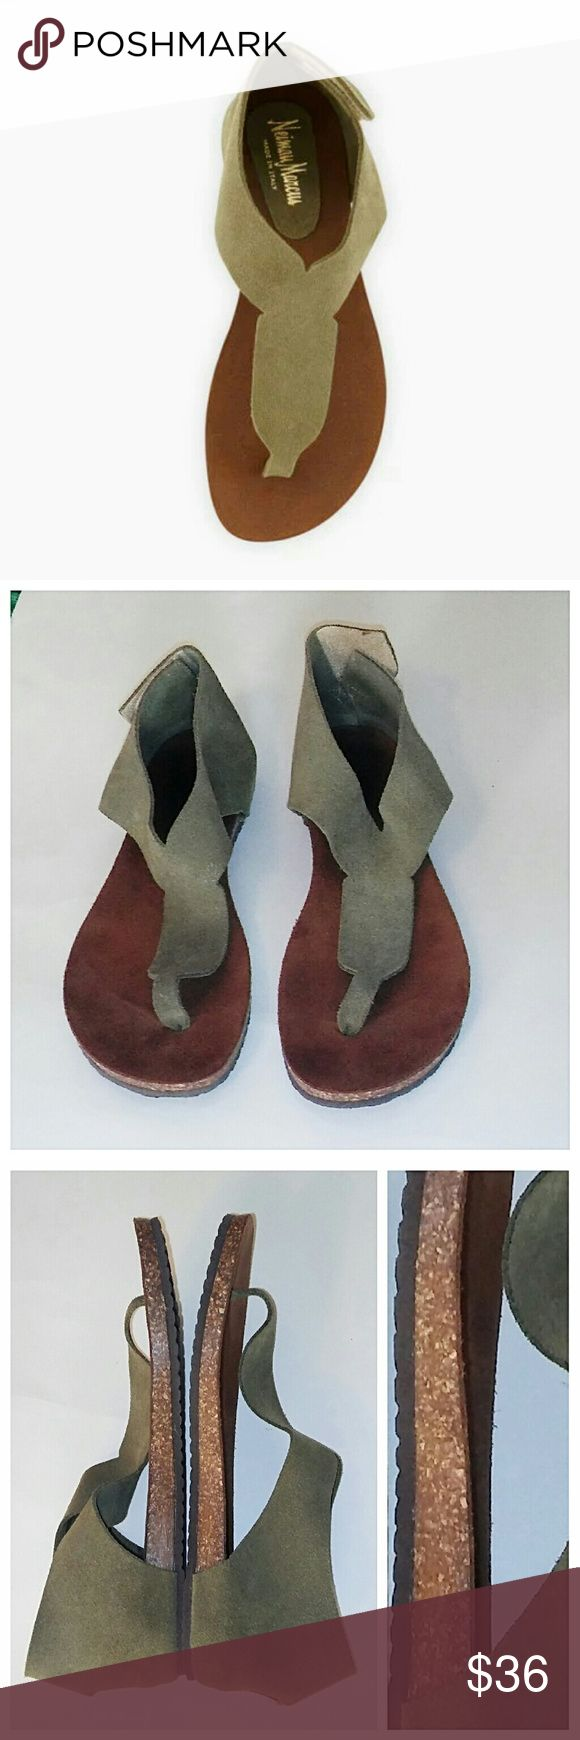 Neiman Marcus Arya Suede Sandals Earthy, comfy shoes in like new condition. Rear velcro closure. Truest color reflected in pic 7. 💥 Reasonable offers accepted 💥 Neiman Marcus Shoes Sandals